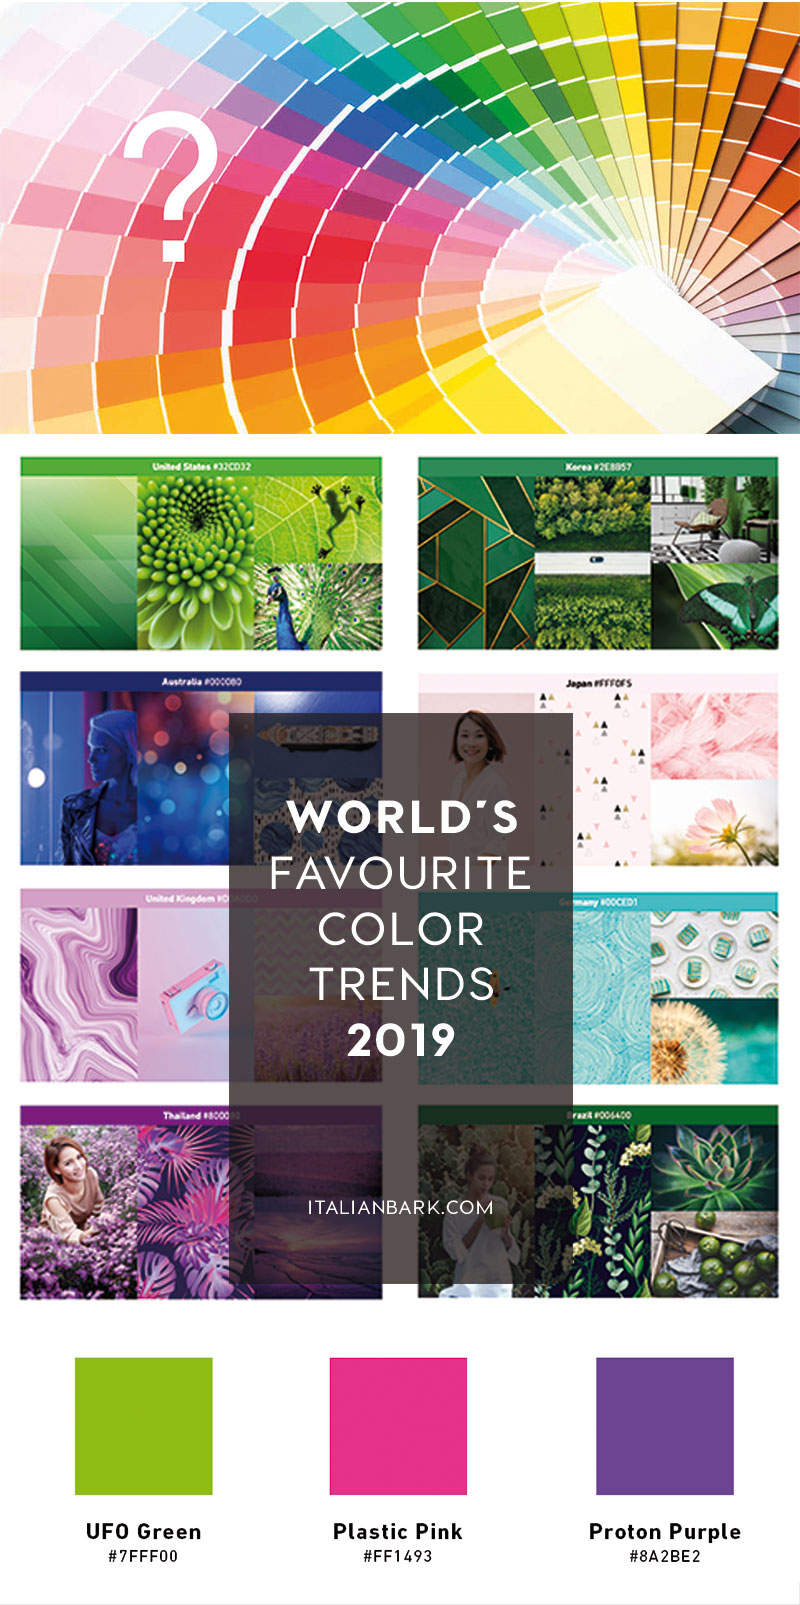 pantone 2019 color of the year, color trends 2019, italianbark interior design blog